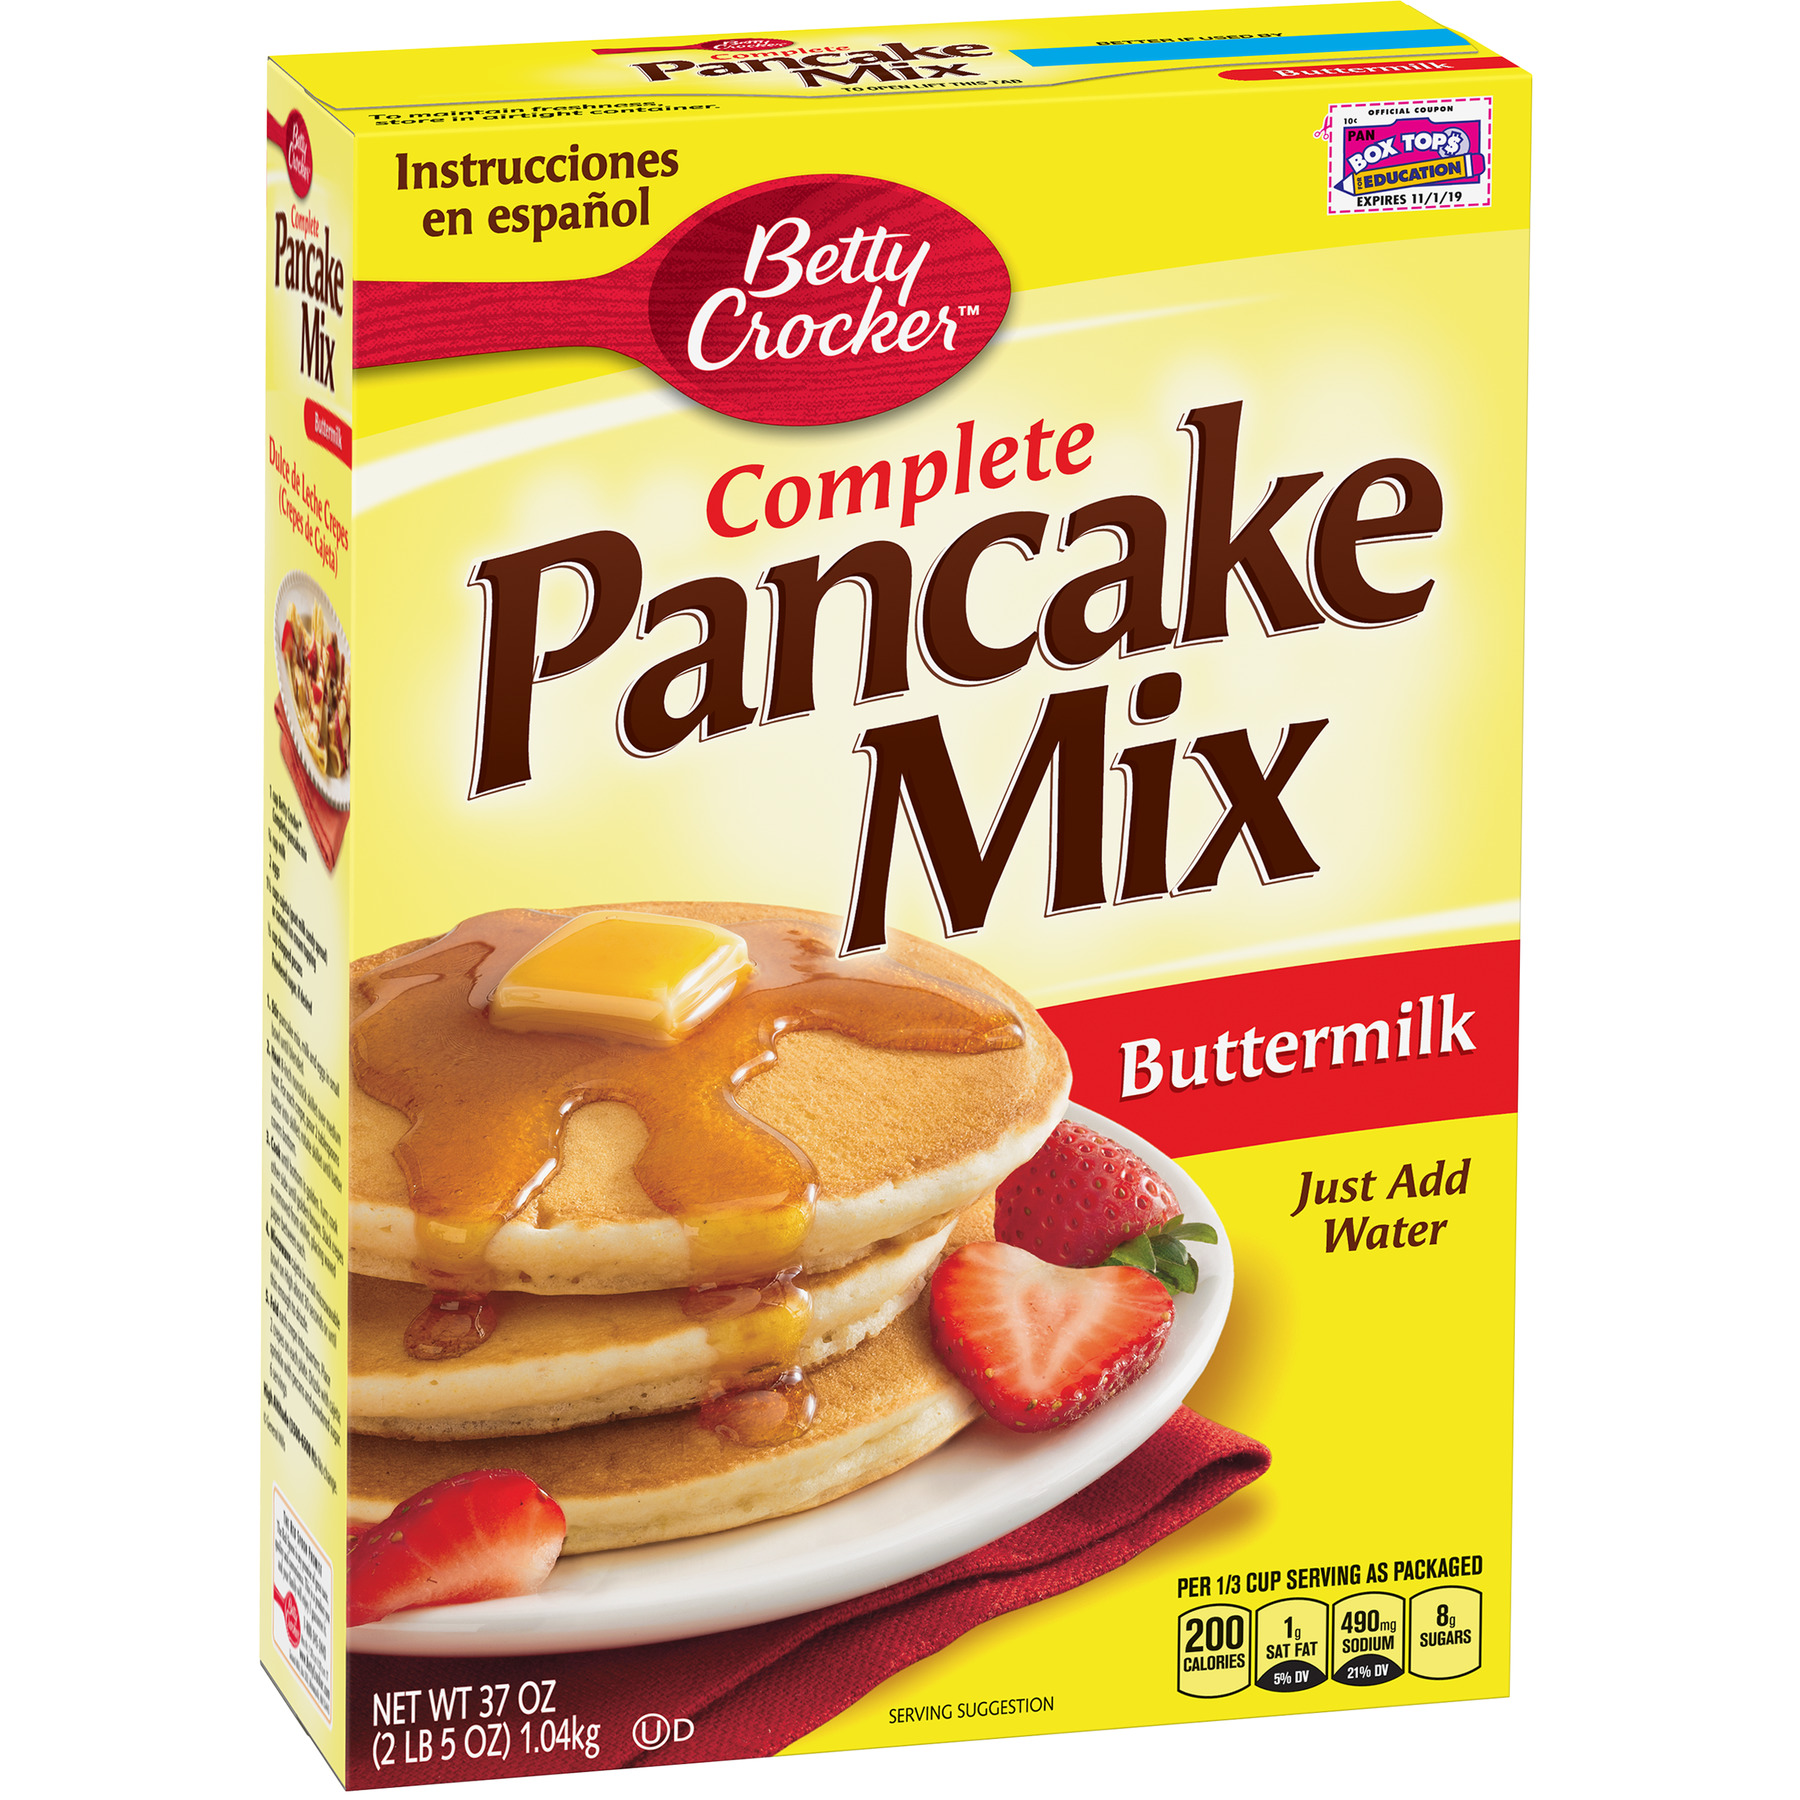 Bisquick Baking Mix Complete Pancake Mix Buttermilk 37 Oz Walmart